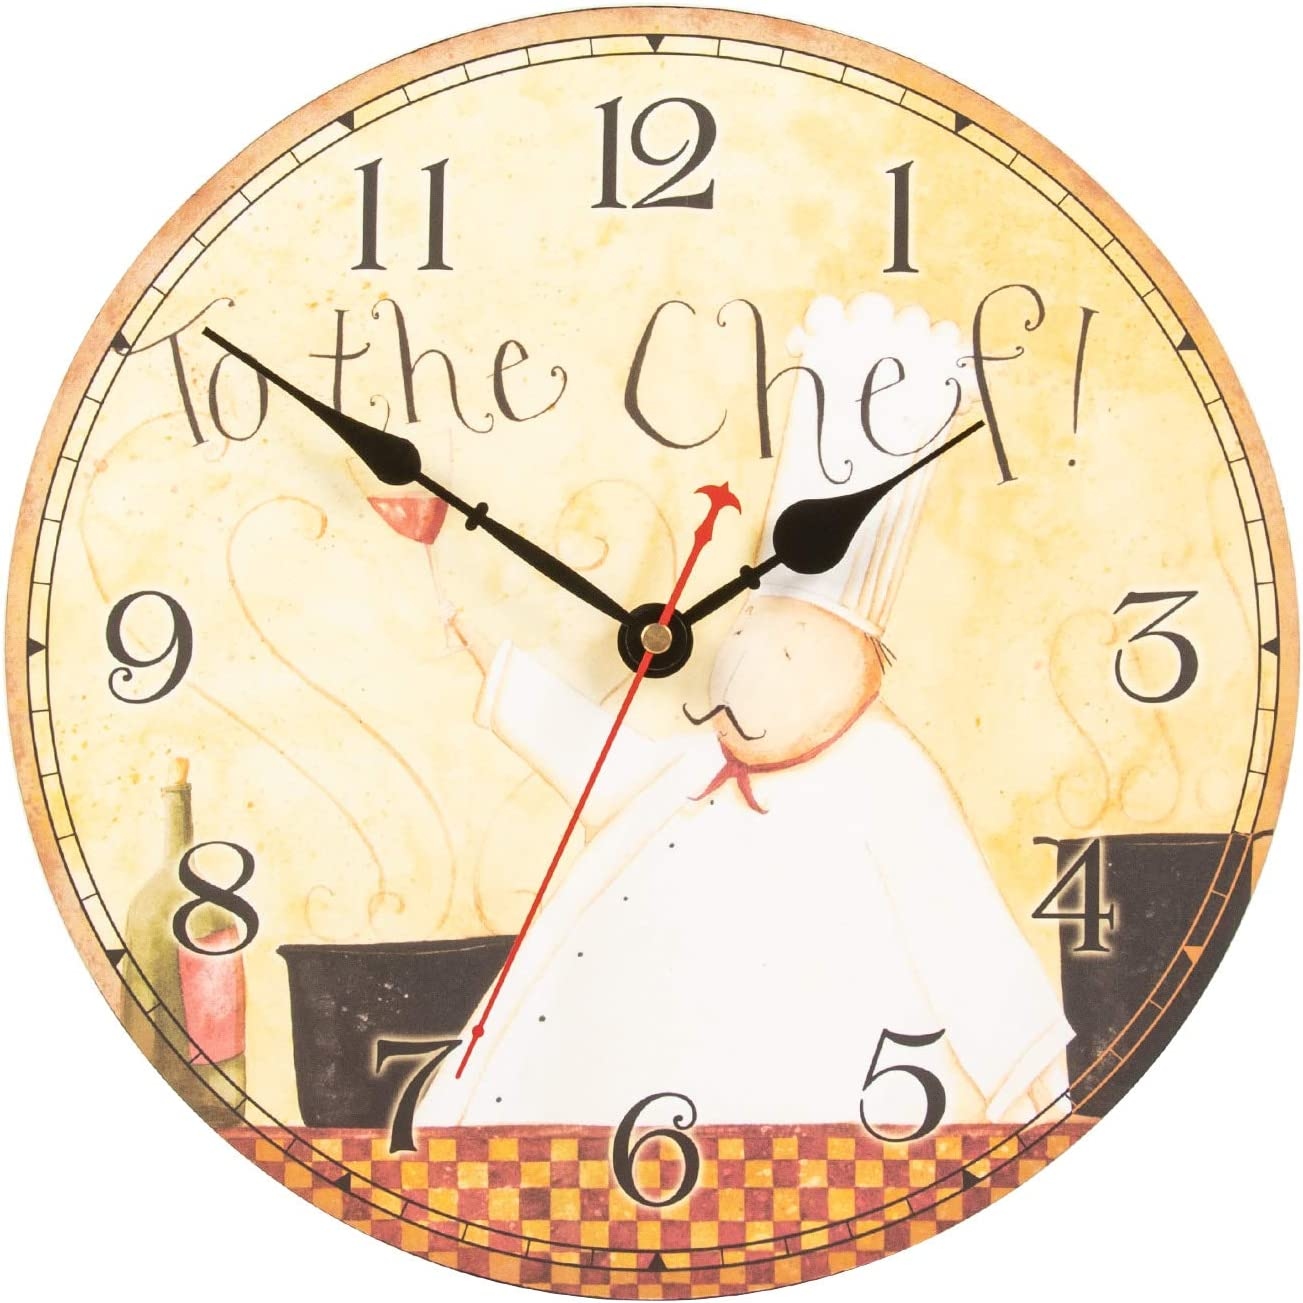 KI Store Chef Wall Clock for Kitchen Dinning Restaurant Café Decorative Wall Clock 12-inch Battery Operated (to The Chef)